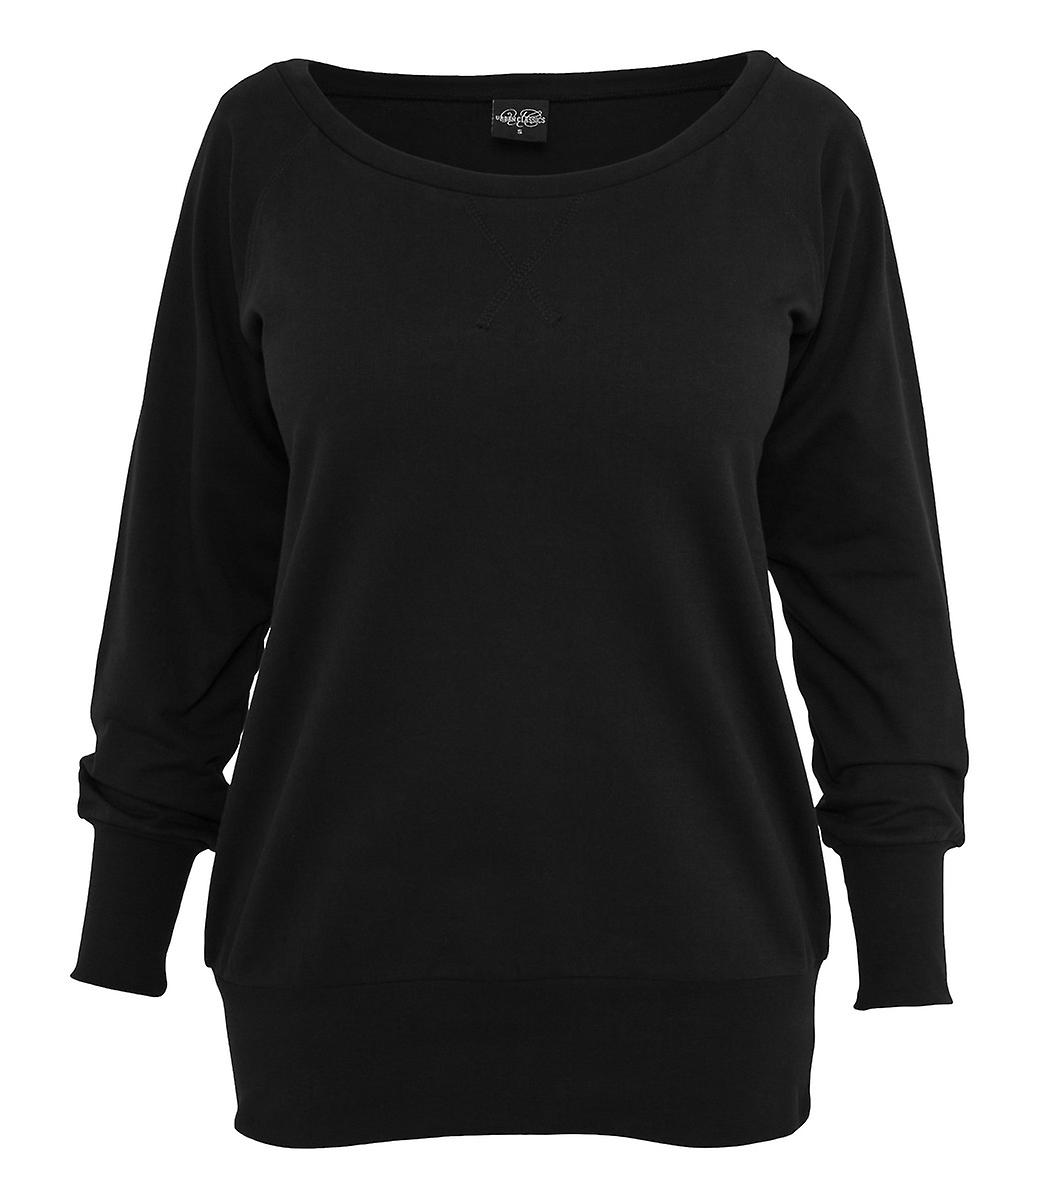 Urban classics ladies Wideneck crewneck